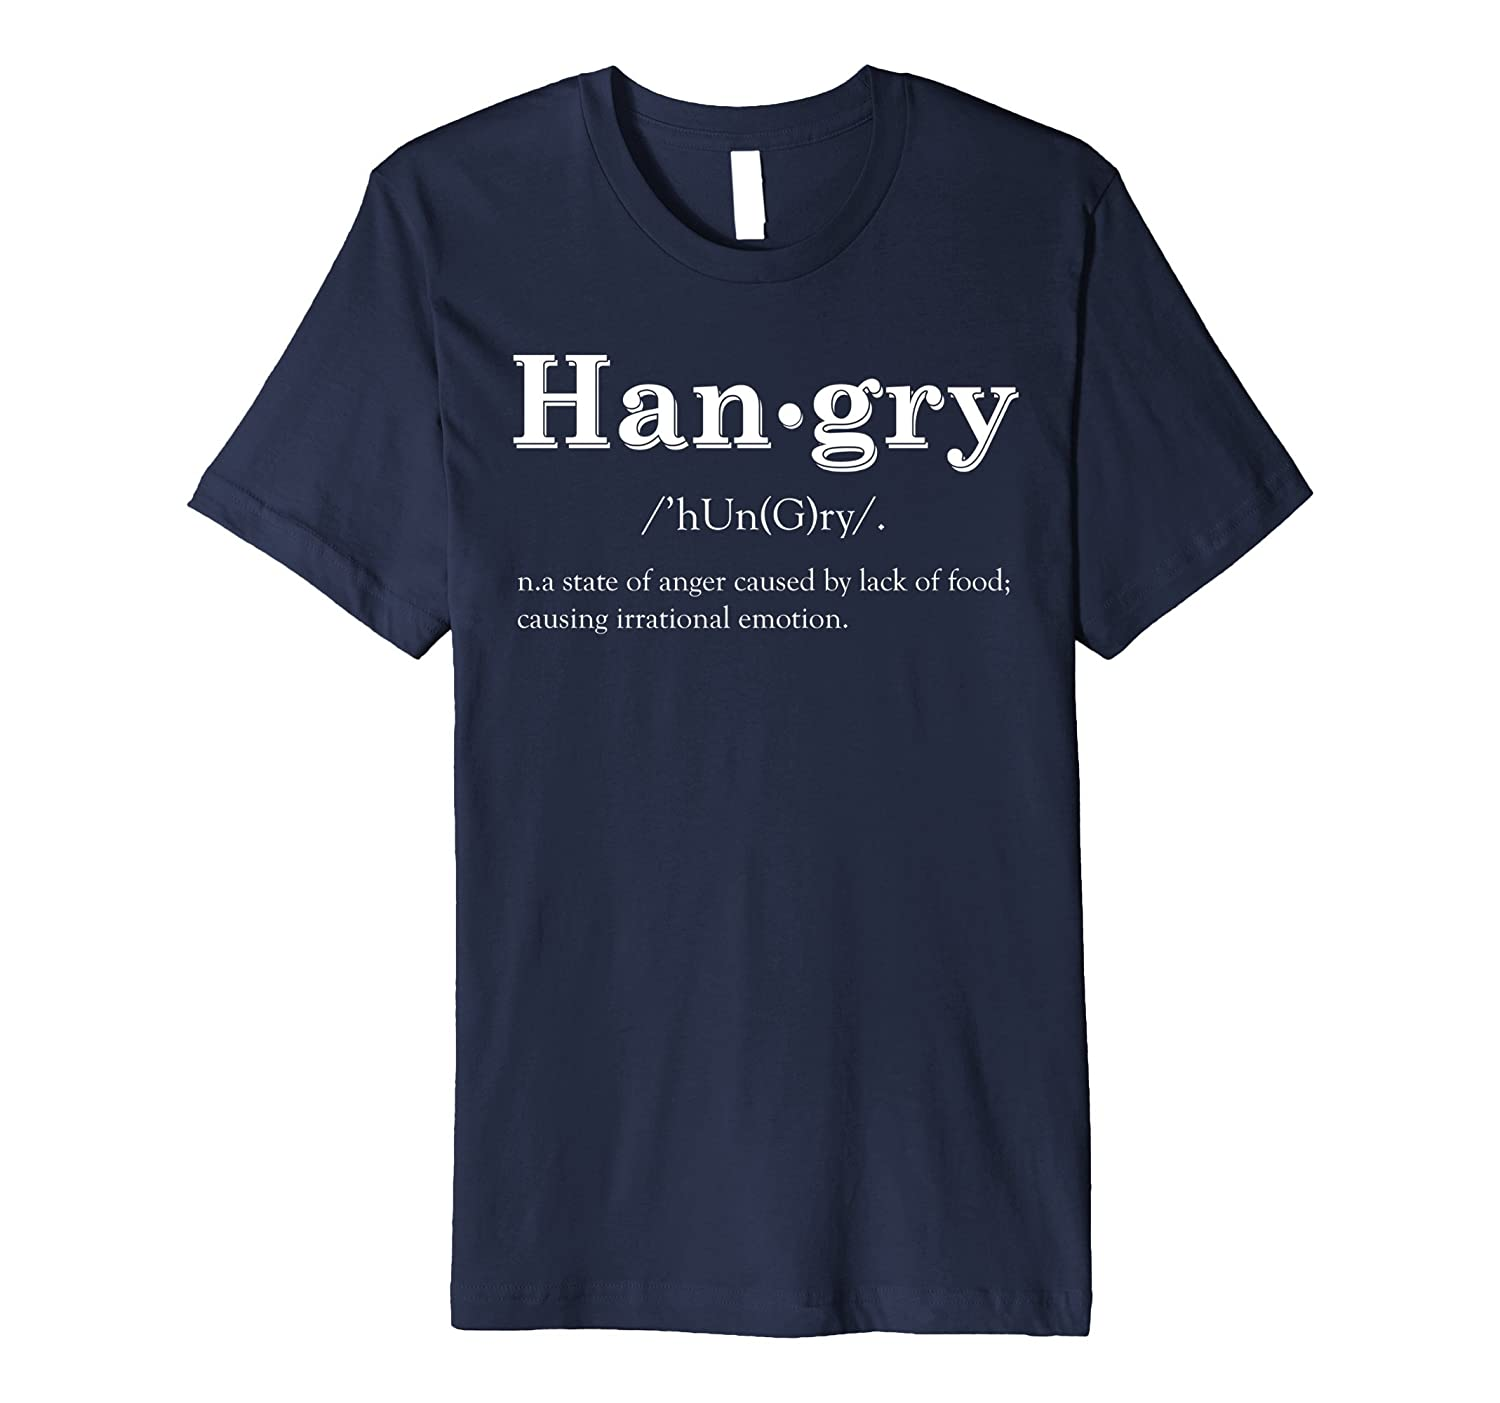 Hangry Han.gry Hungry TShirt Funny Saying Lack Food Diet Tee-BN